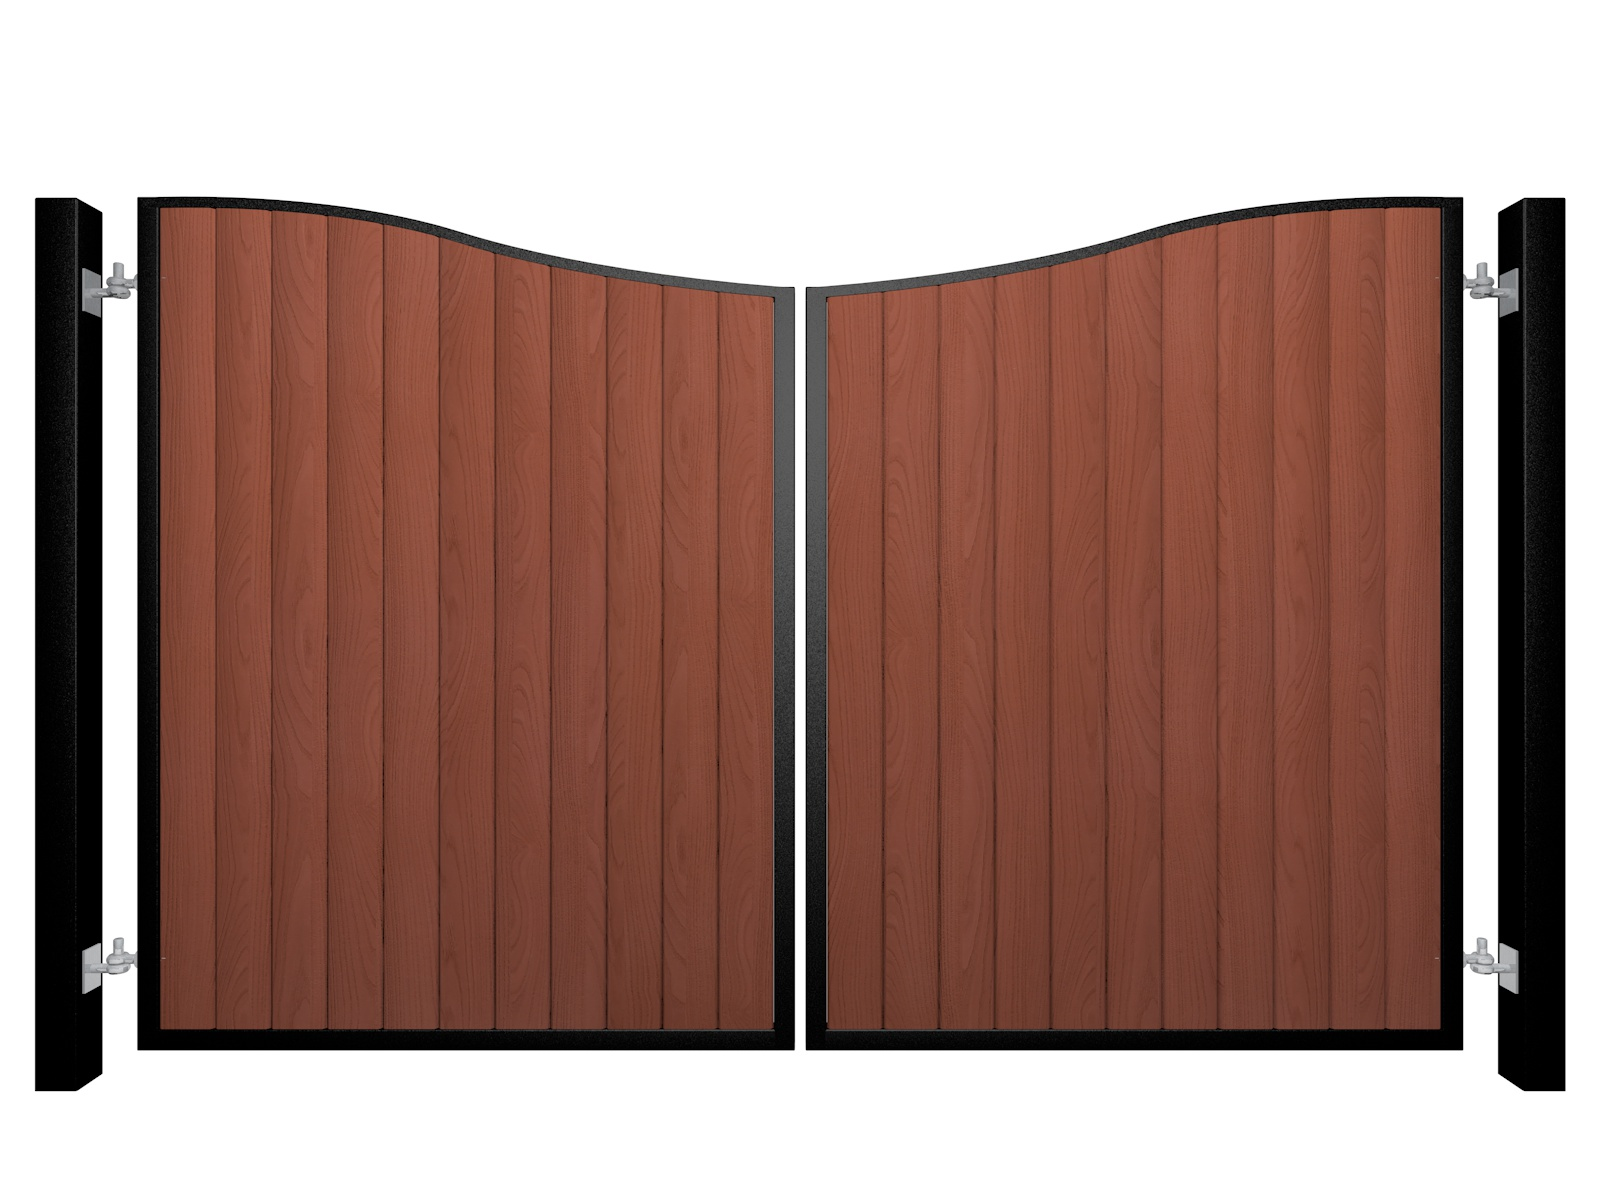 metal framed wood fill bow top automated driveway gate somerset